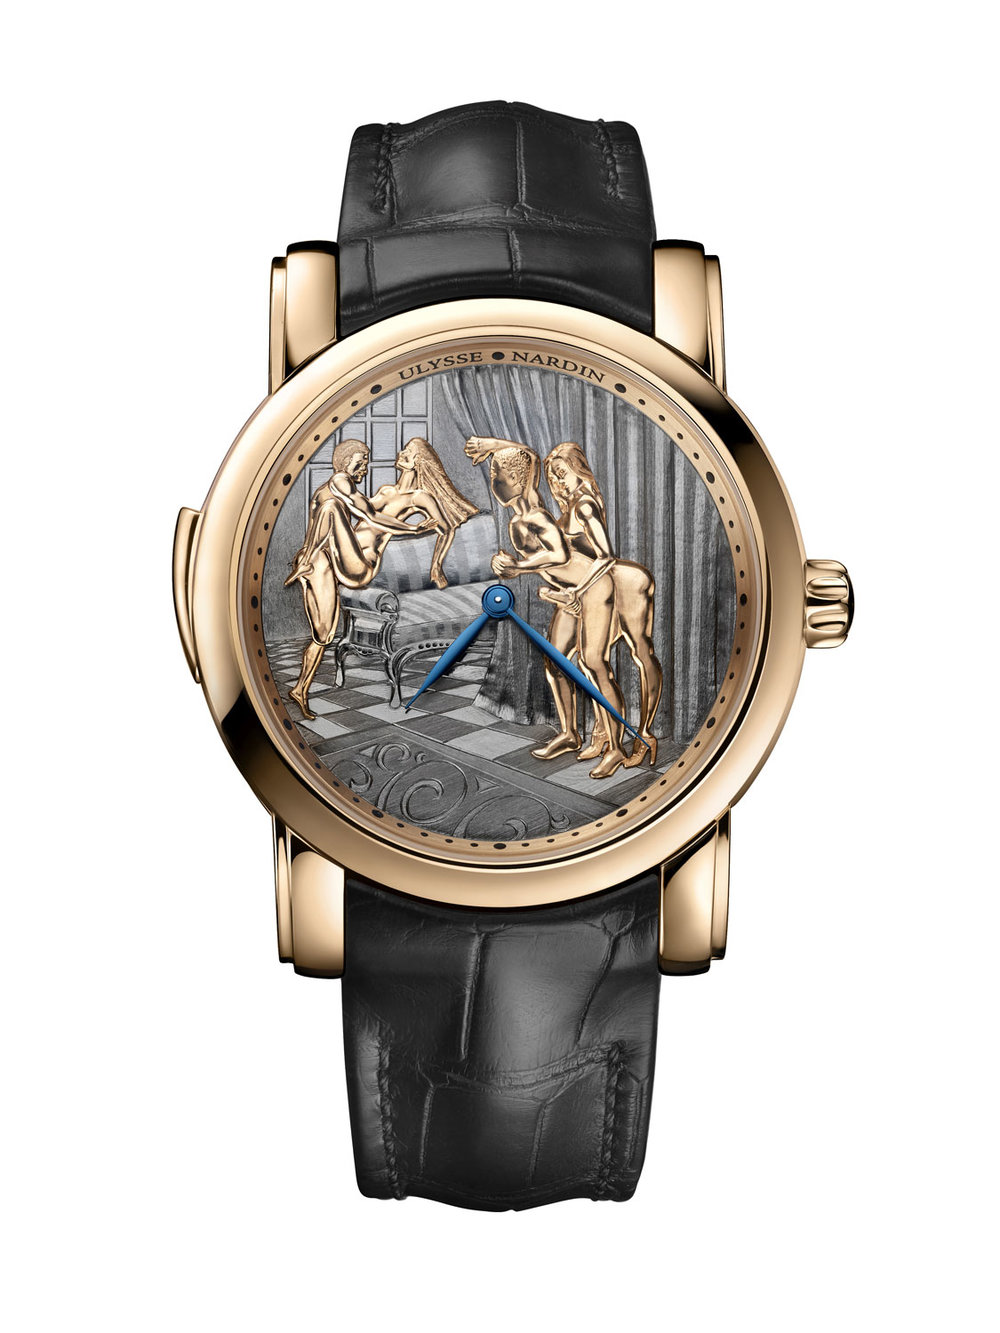 The_Ink_Collective_Creative_Content_Design_Agency_Paris_Sydney_Luxury_Editorial_Kering_Ulysse_Nardin_CEO_Patrick_Pruniaux_CEO_Interview_Luxury_Watches_Timepieces_Swiss_Manufacture_Freak_Out_8.jpg